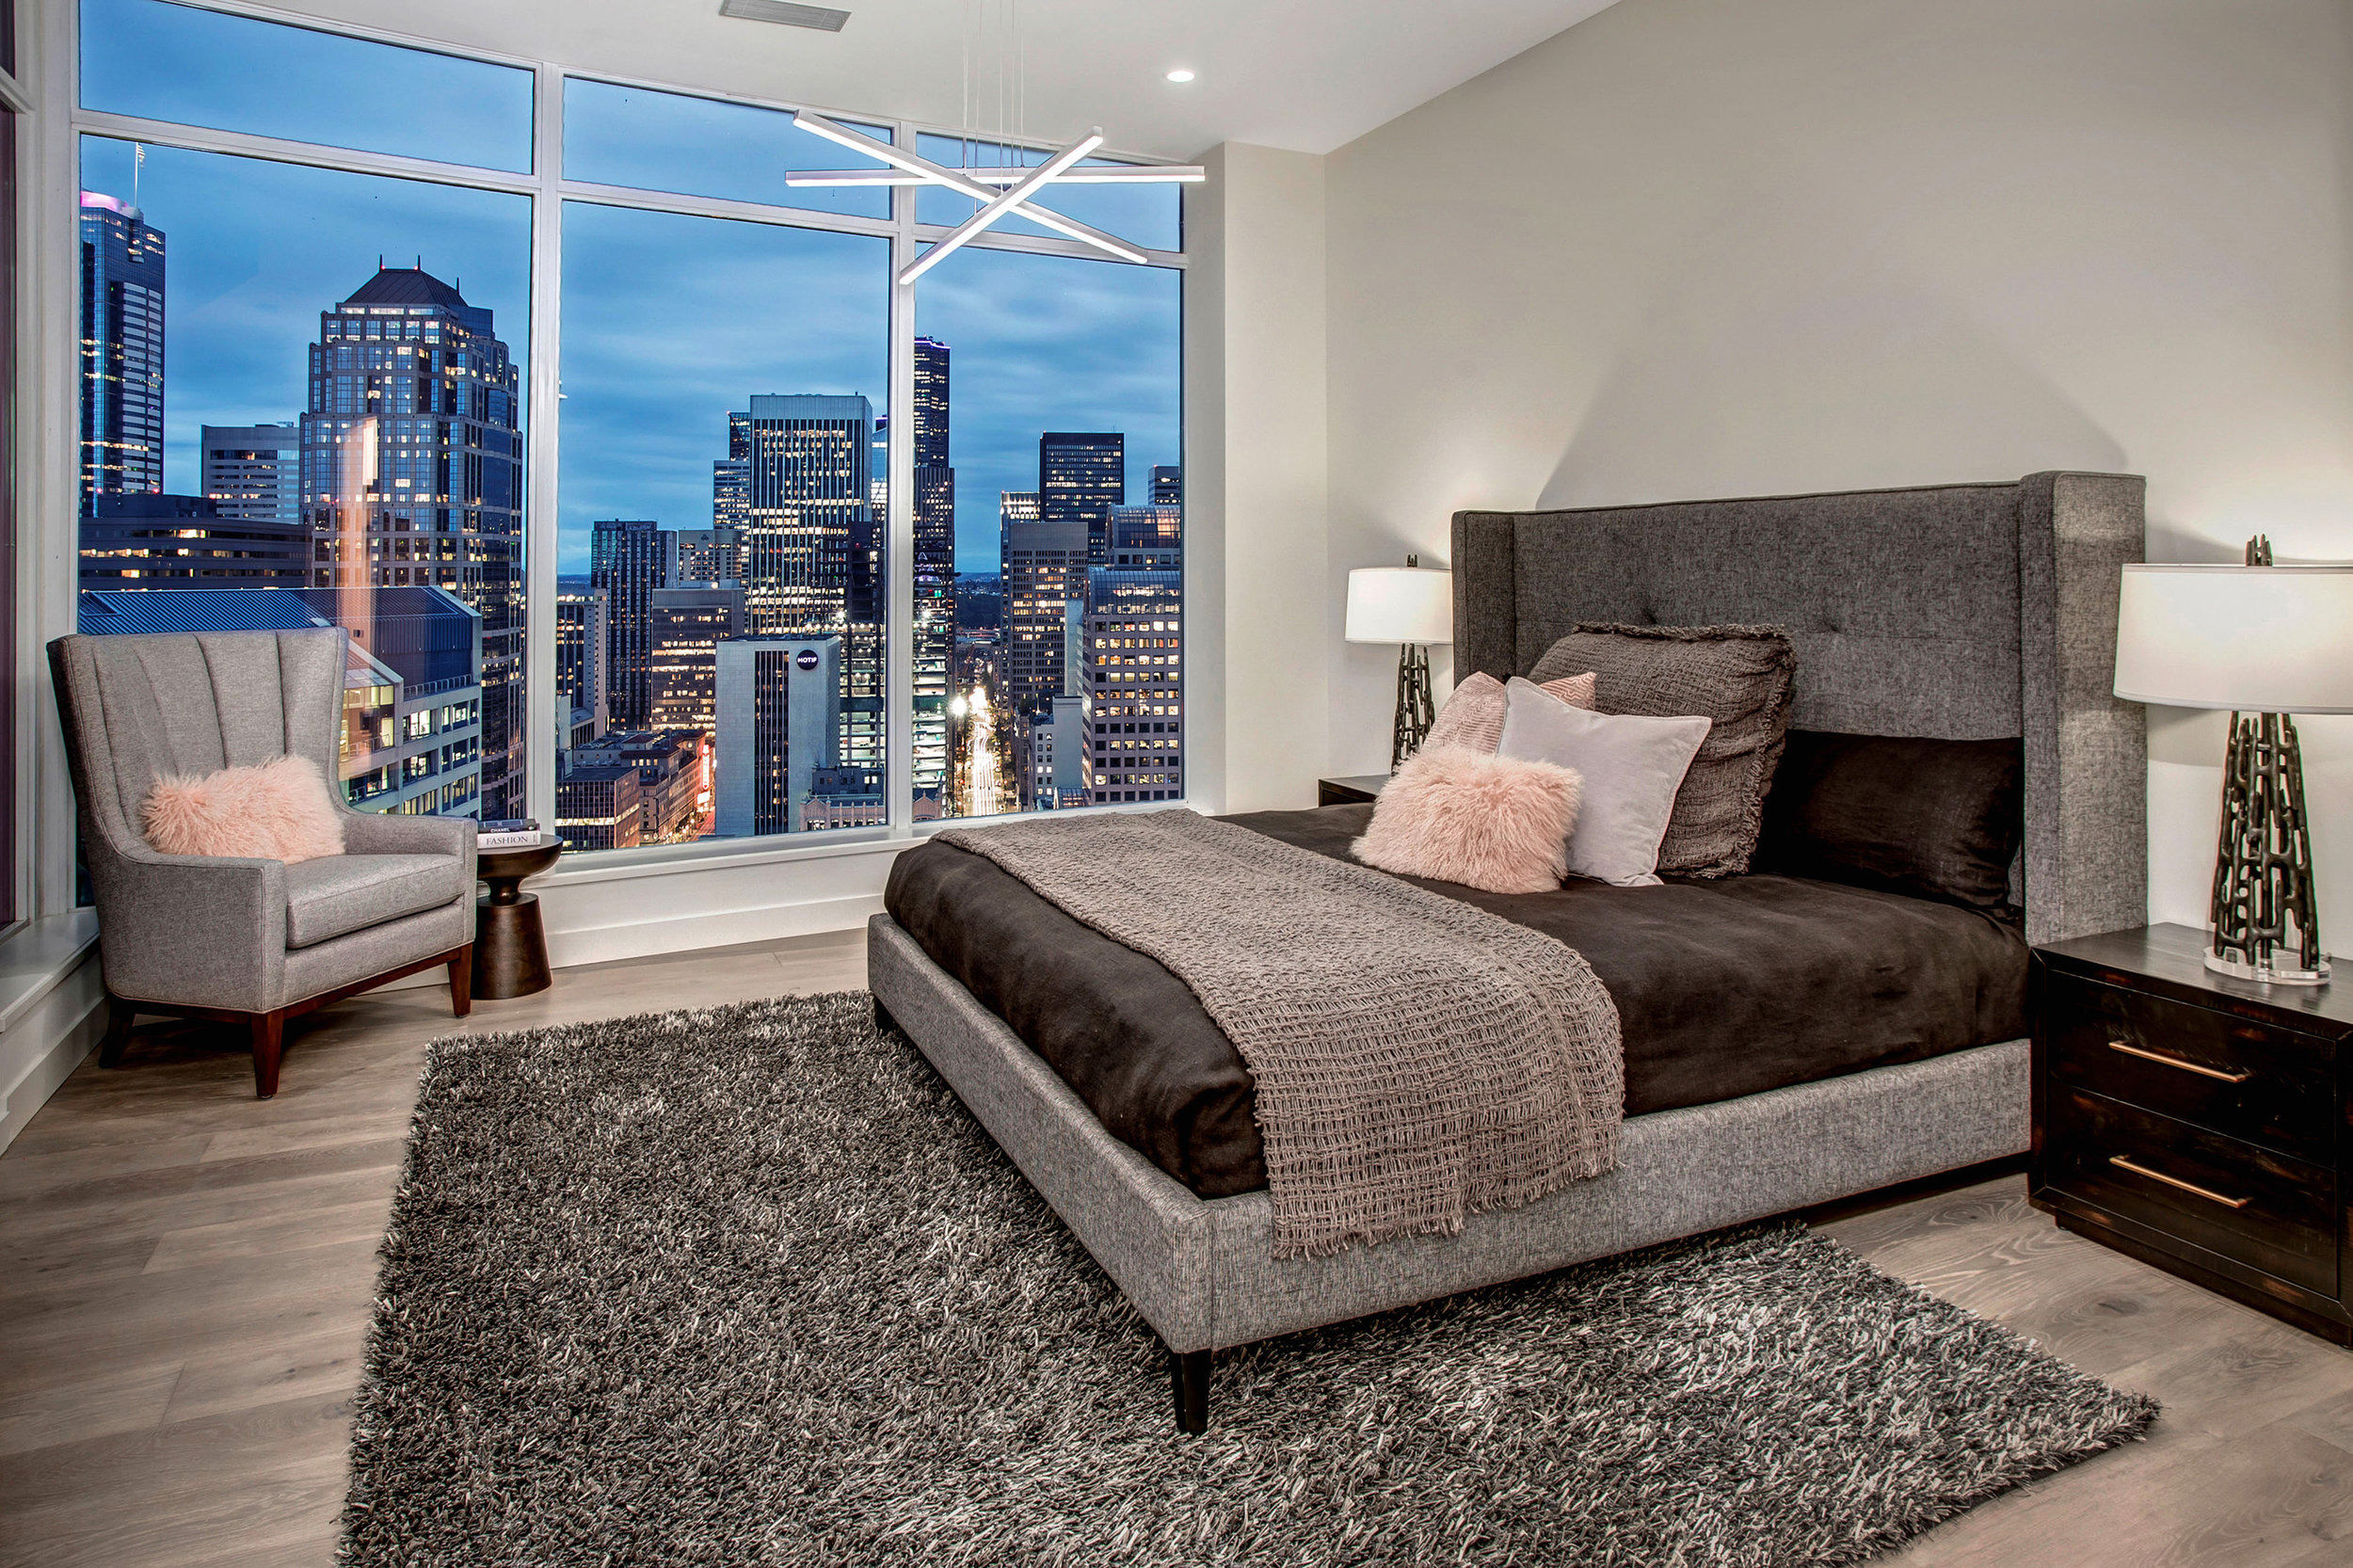 Master bedroom at dusk with glittering city views.